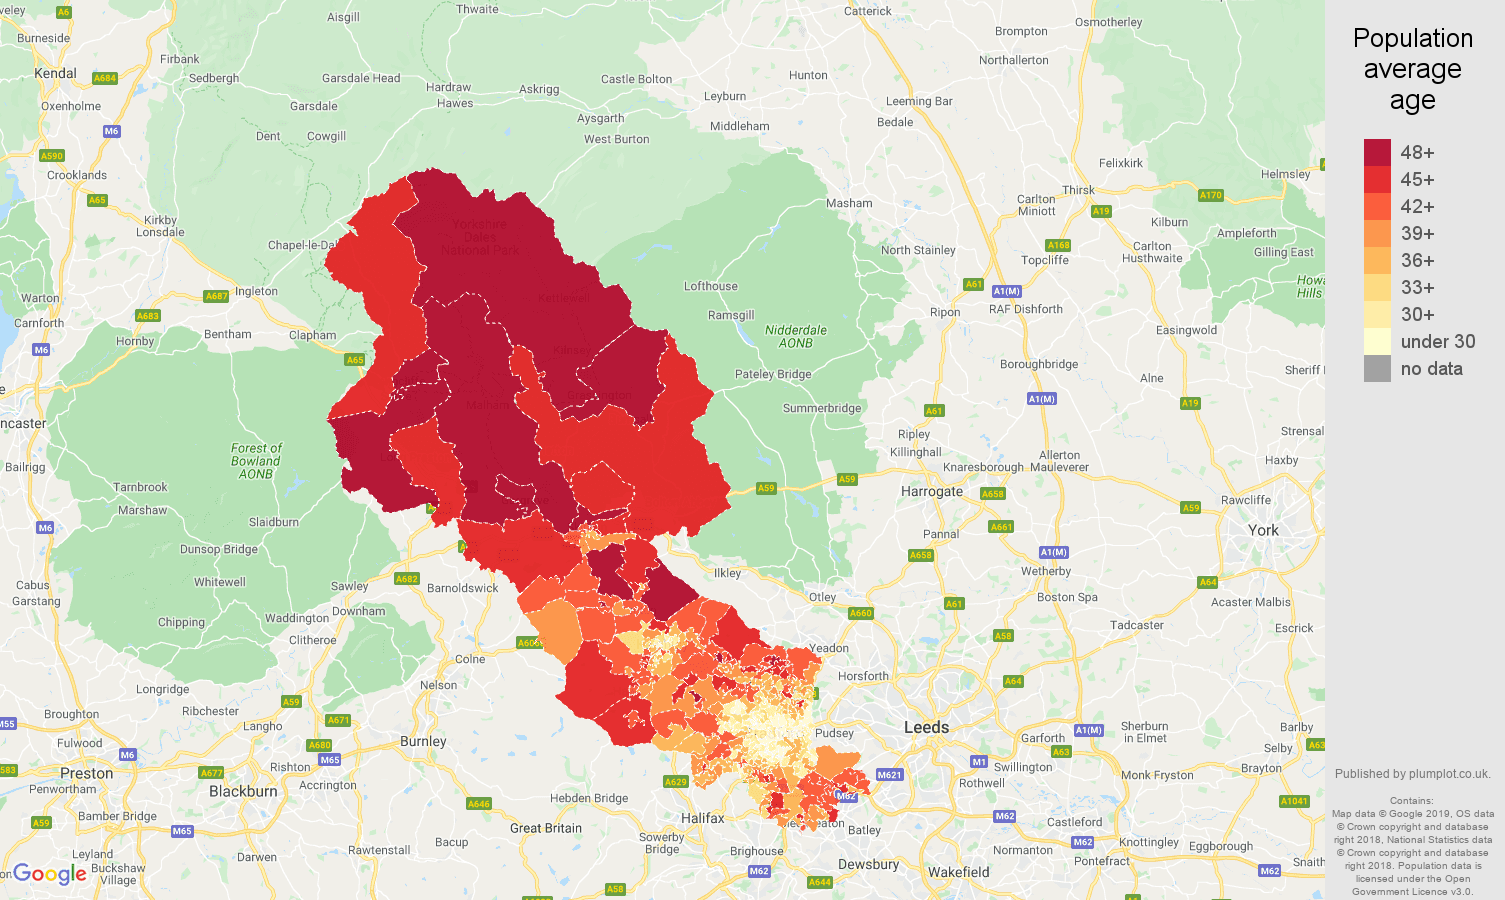 Bradford population average age map